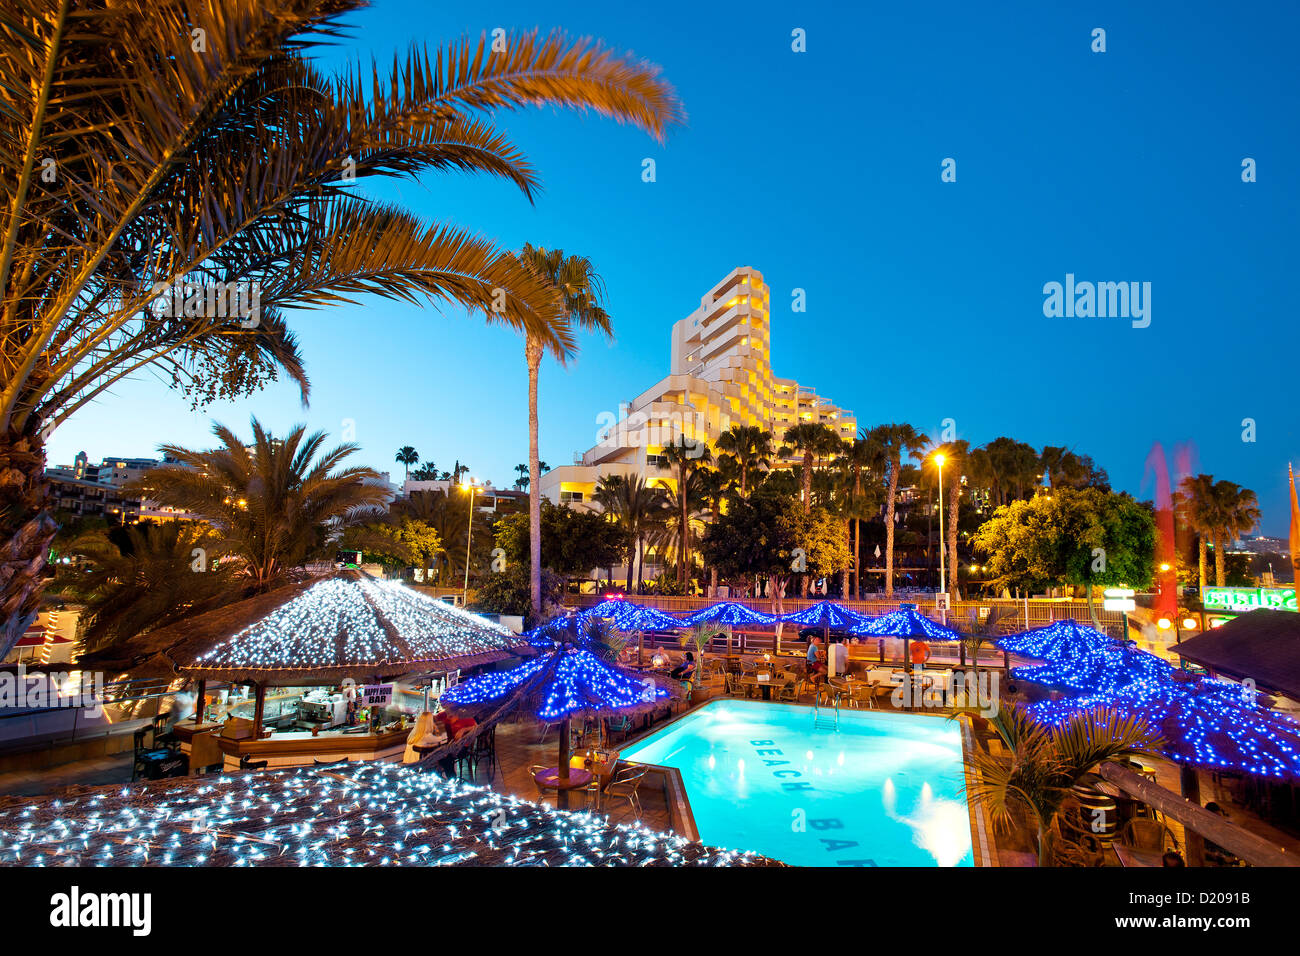 Hotel and Bar in the evening, Playa de Ingles, Gran Canaria, Canary Islands, Spain - Stock Image